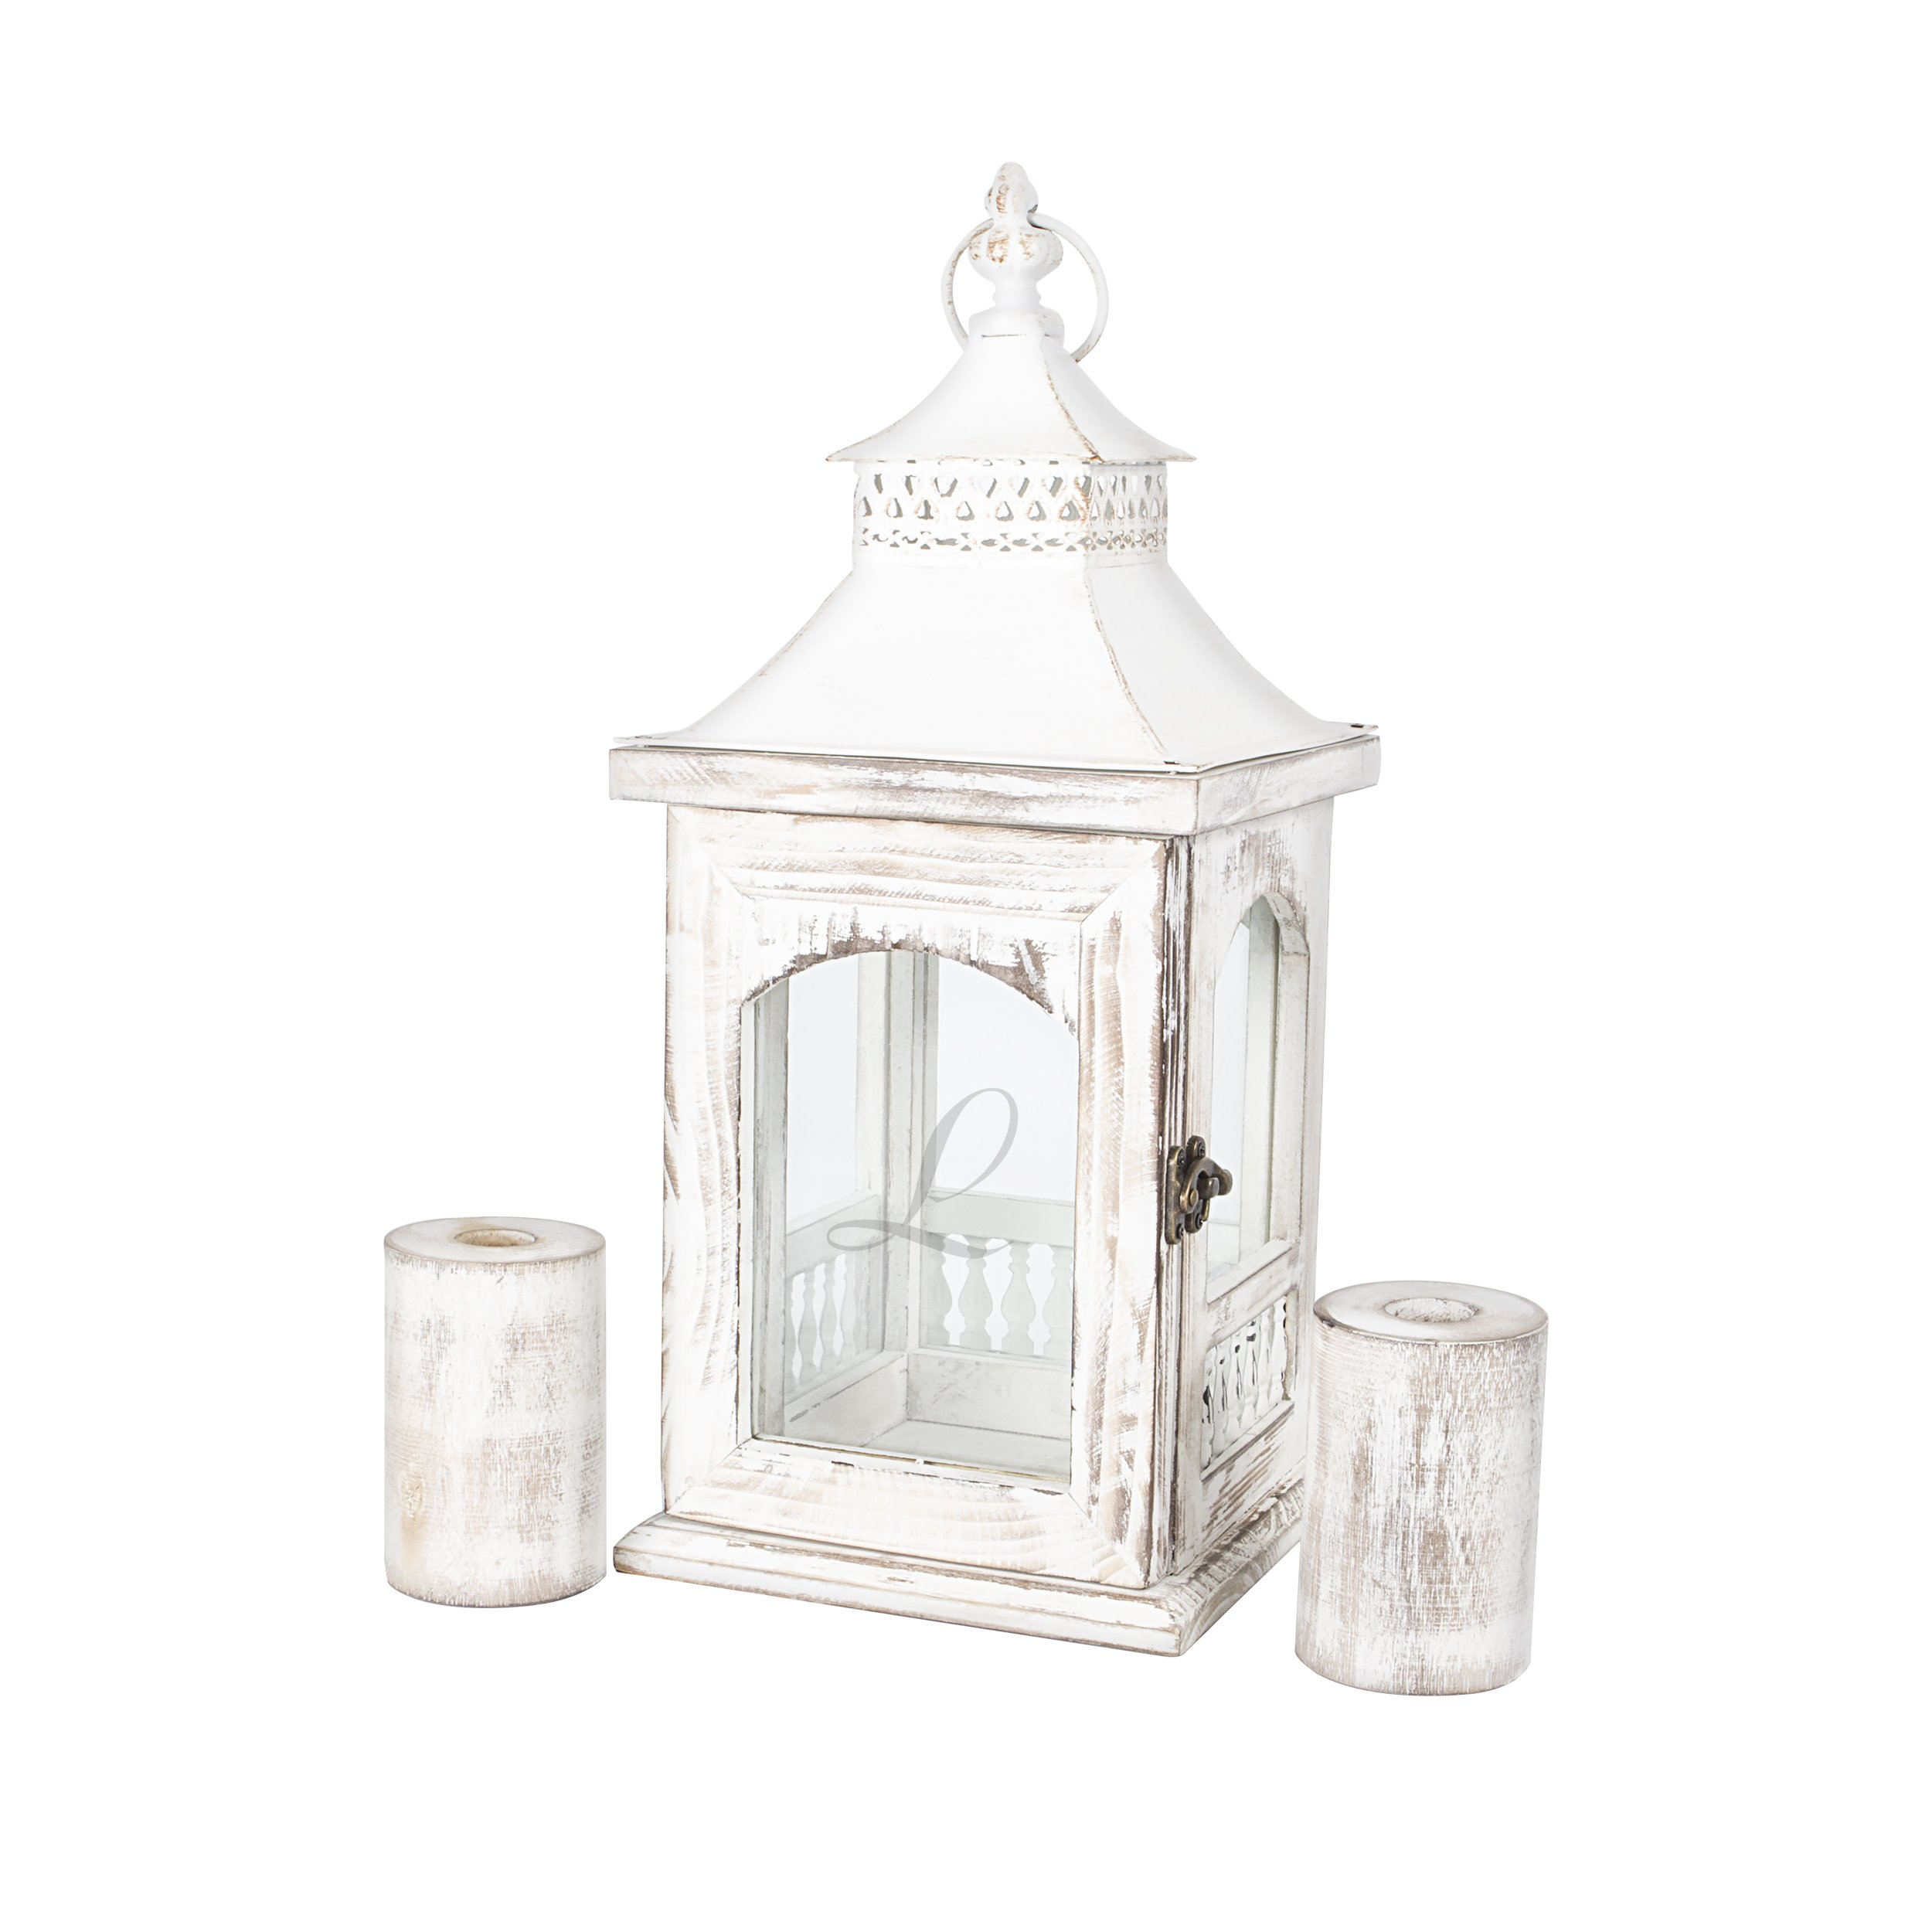 Cathy's Concepts Personalized Rustic Unity Lantern with Candle Holder, Letter L